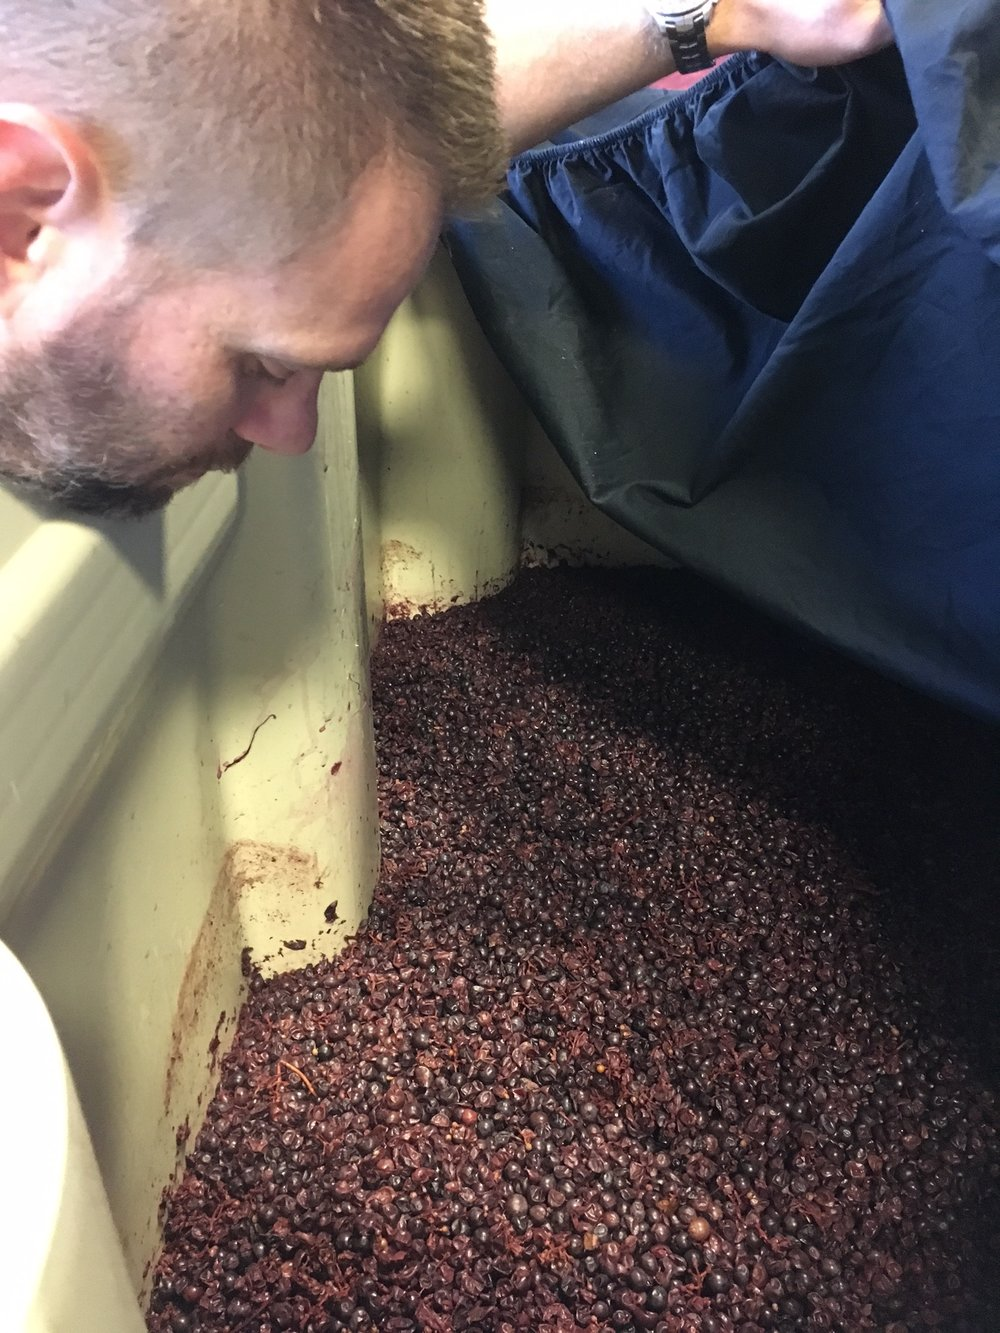 Brian Grasso checking on some of his fruit in a fermenter from the 2017 vintage.